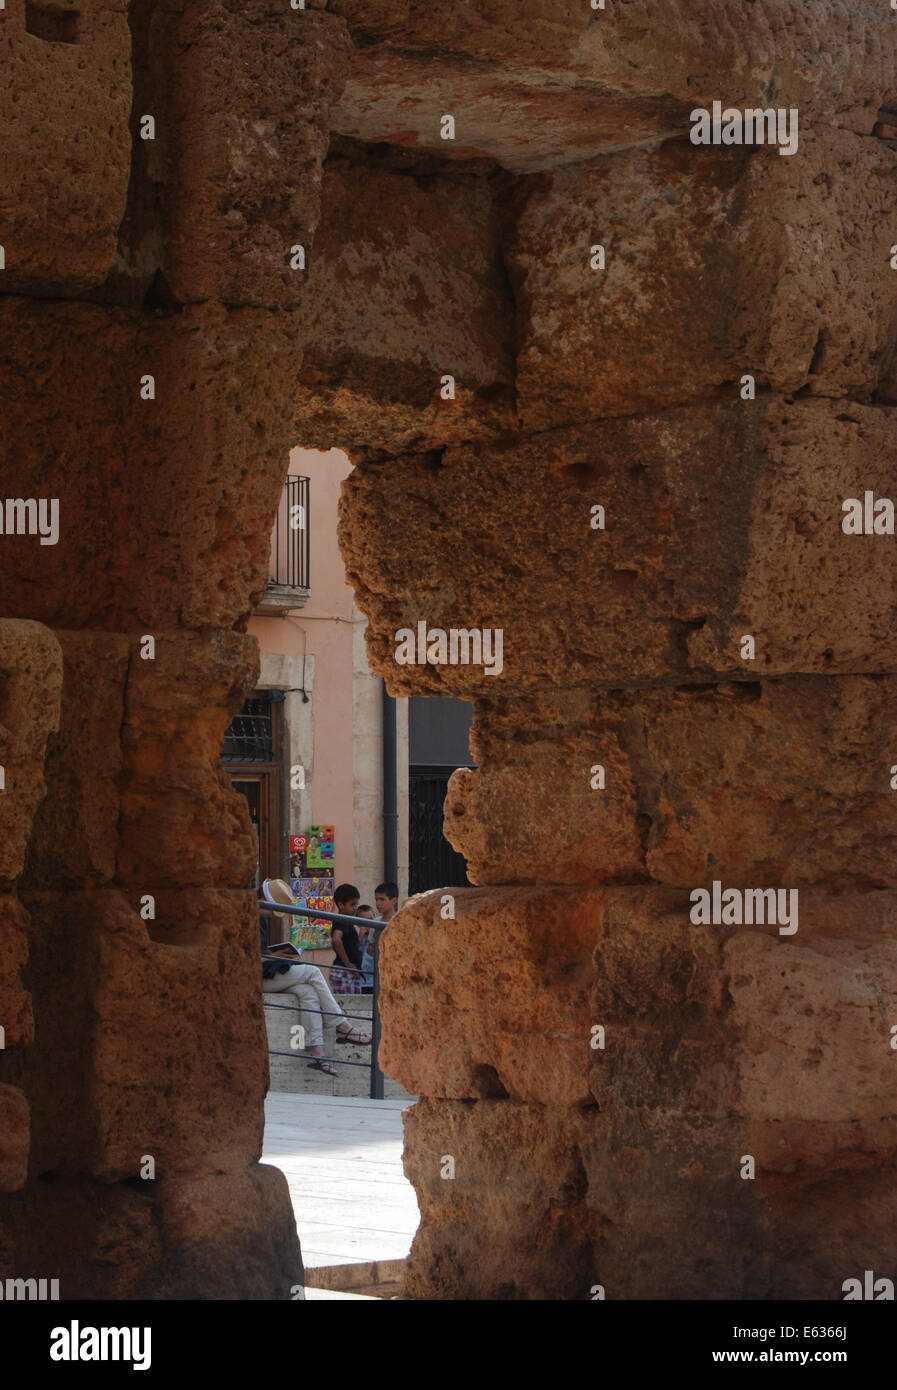 Catalonia hole in the wall. - Stock Image